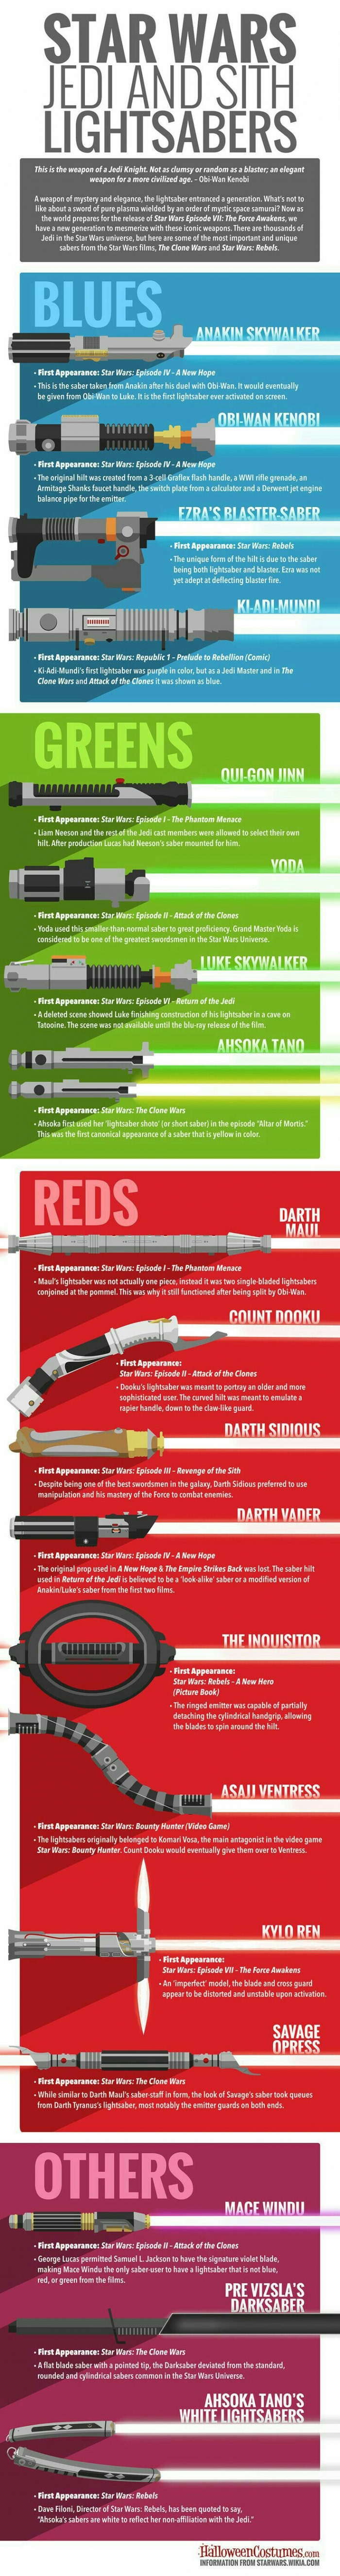 Types of lightsabers